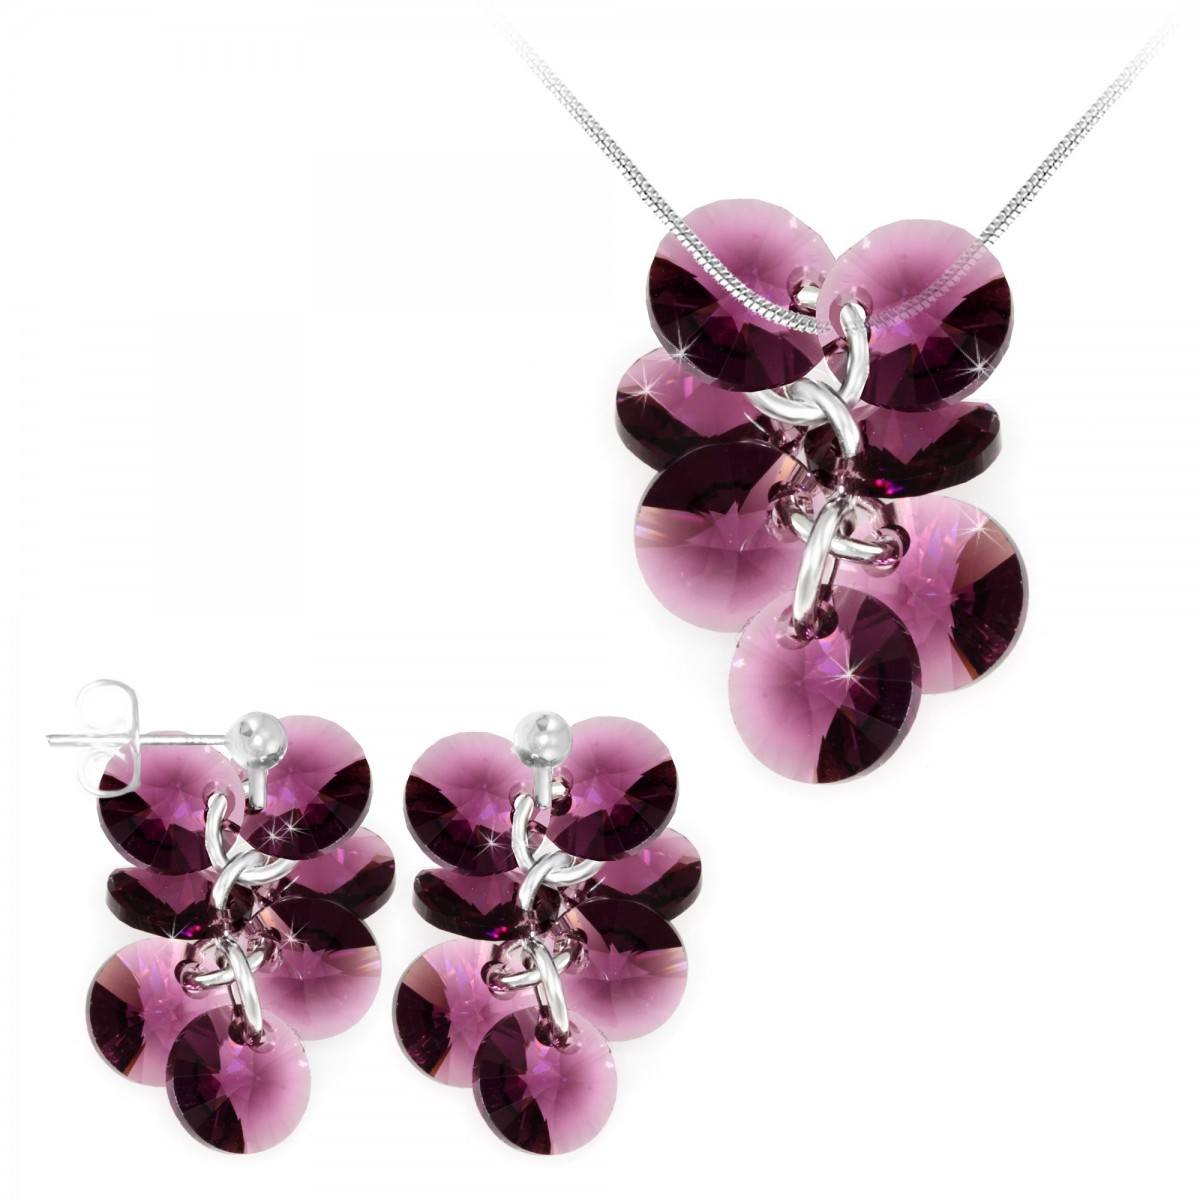 Parure collier et boucles d'oreilles mode So Charm made with Crystal from Swarovski amethyst